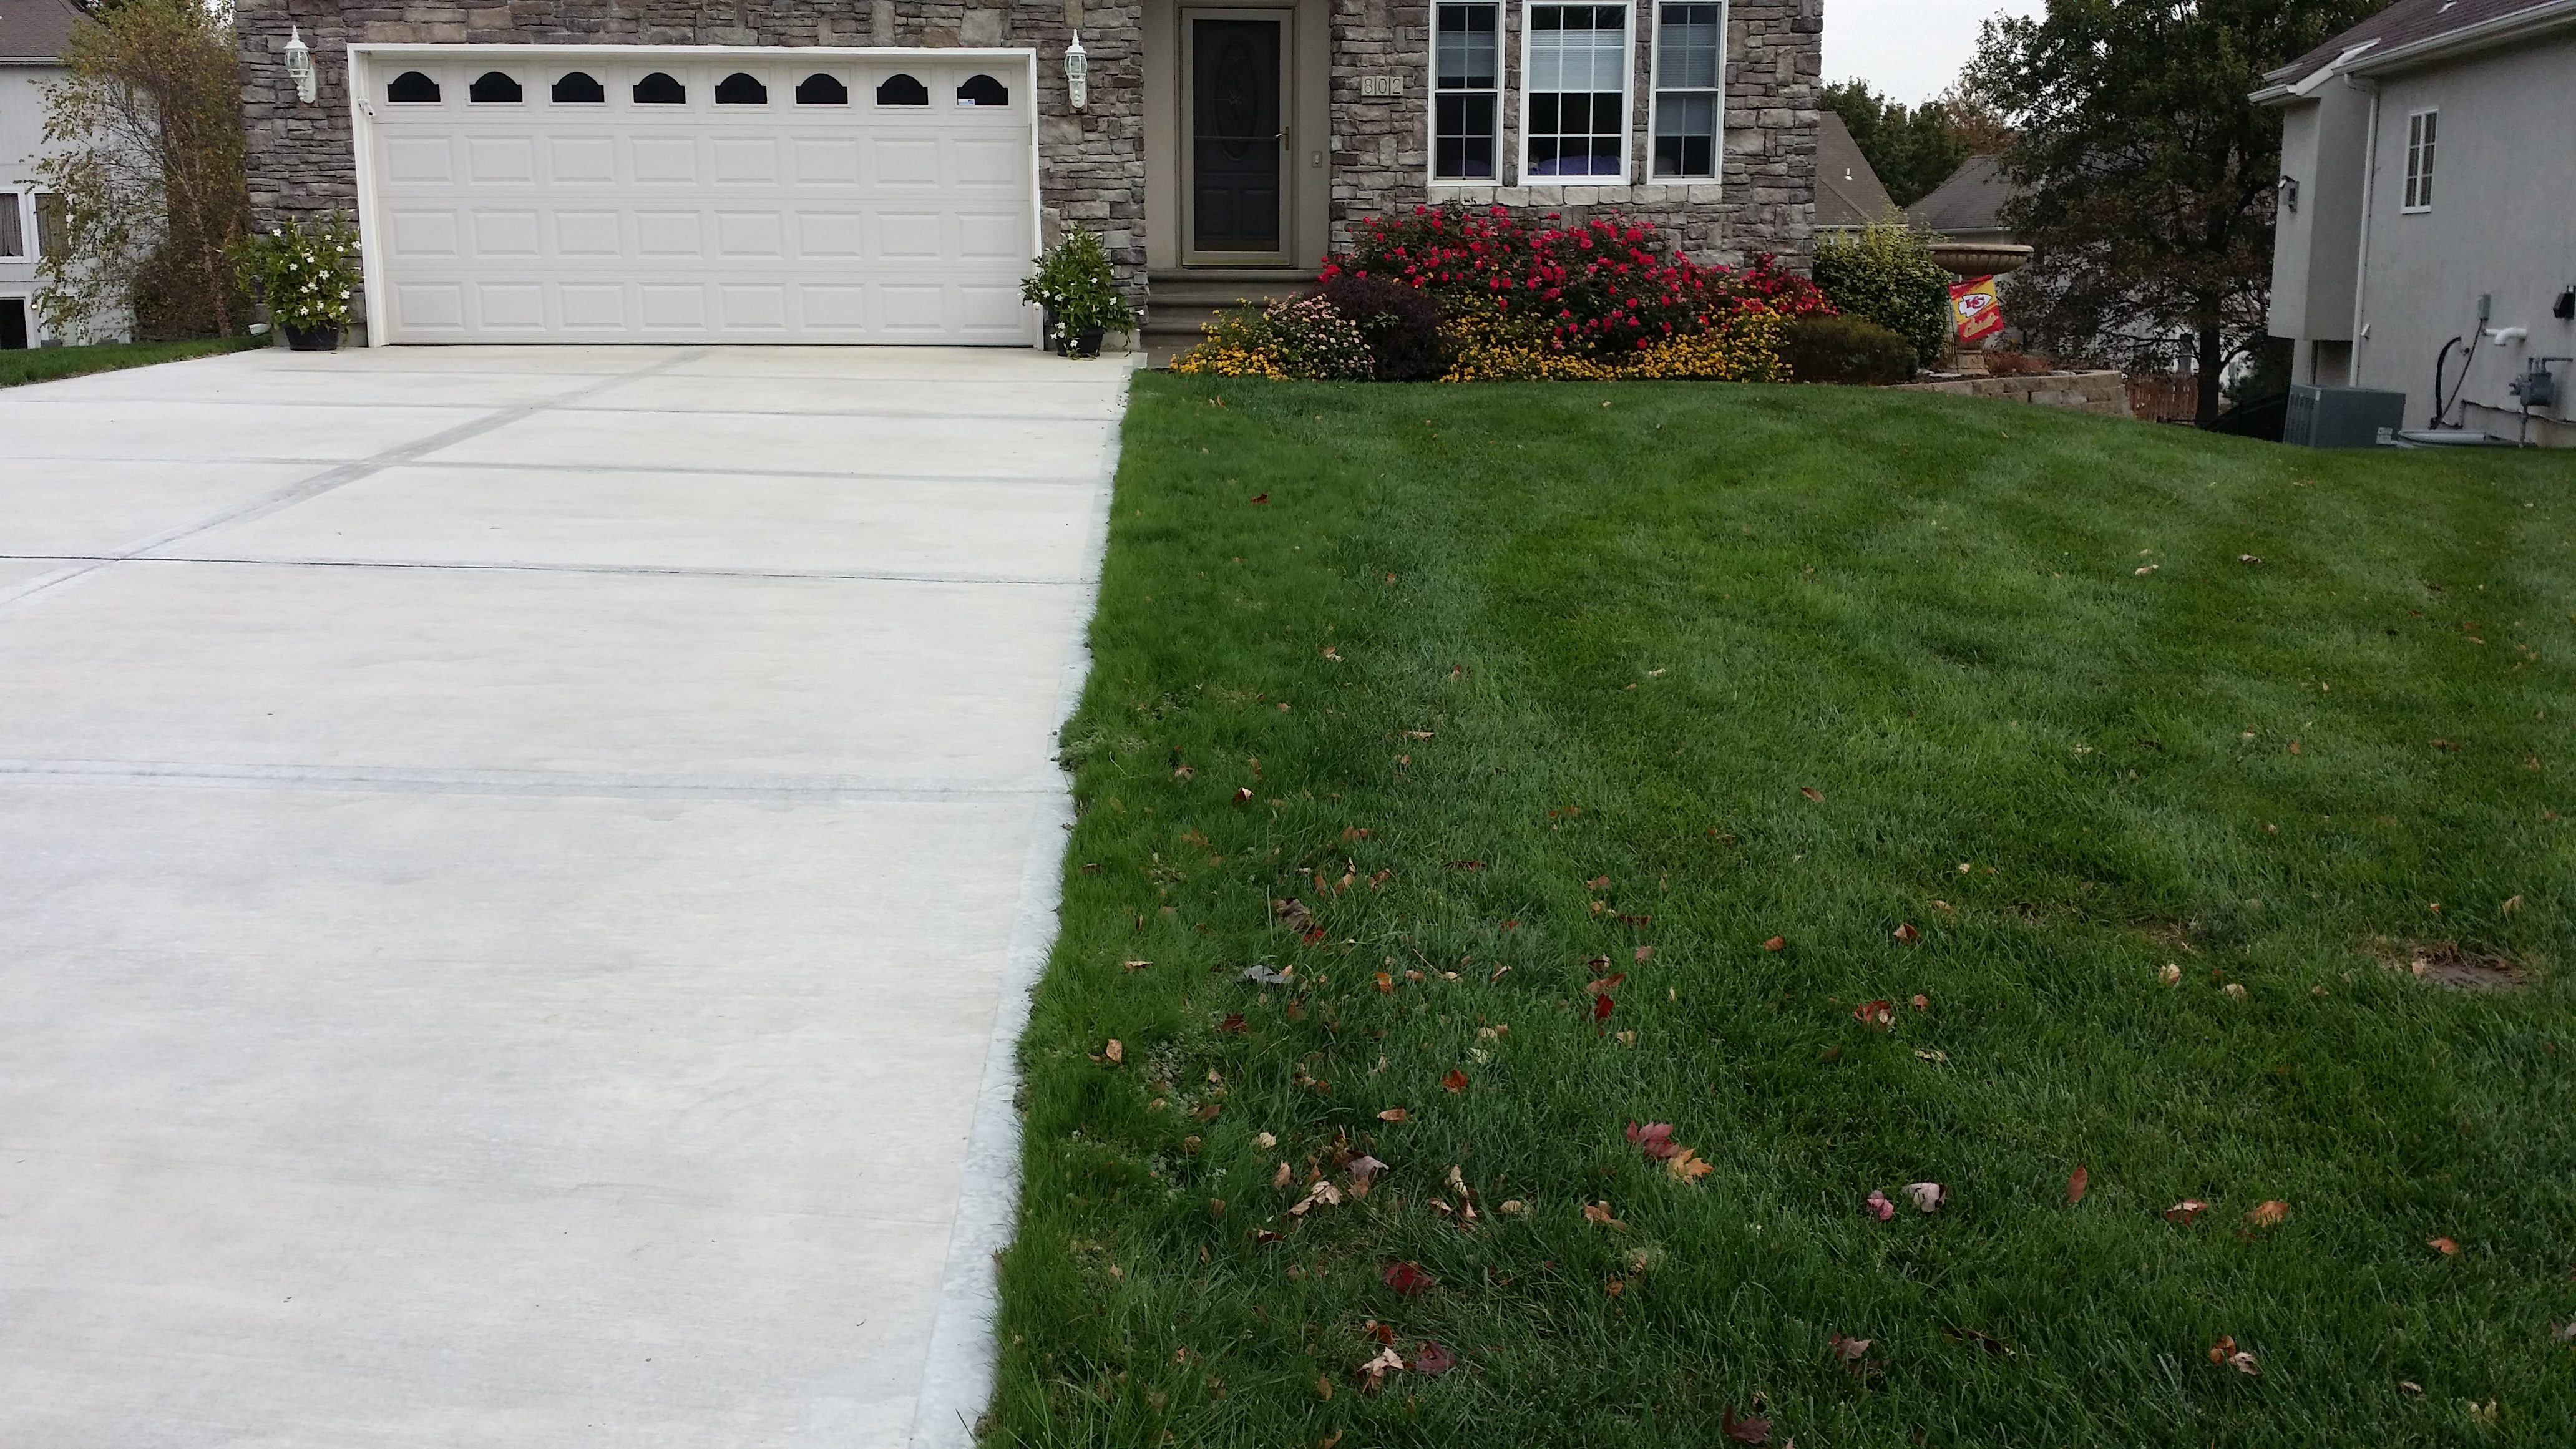 Lawn Renovations | Buddy Rodgers and Son Professional Lawn Care